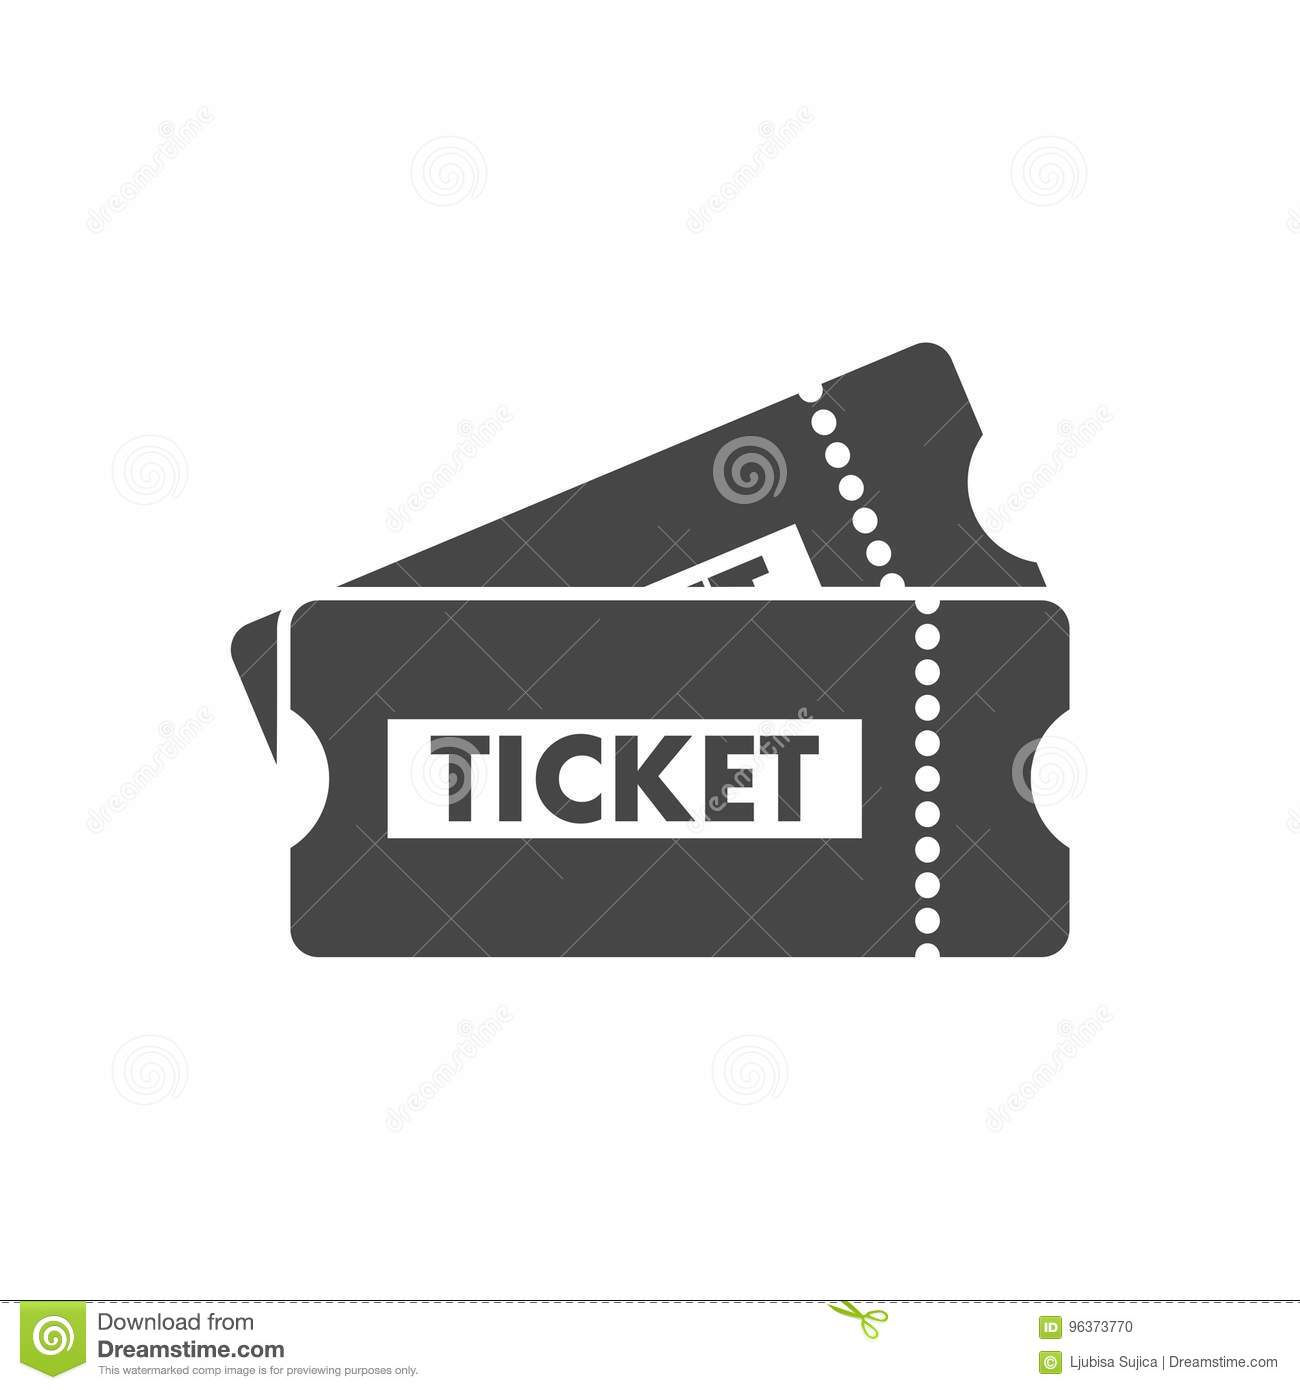 ticket cartoons  illustrations  u0026 vector stock images